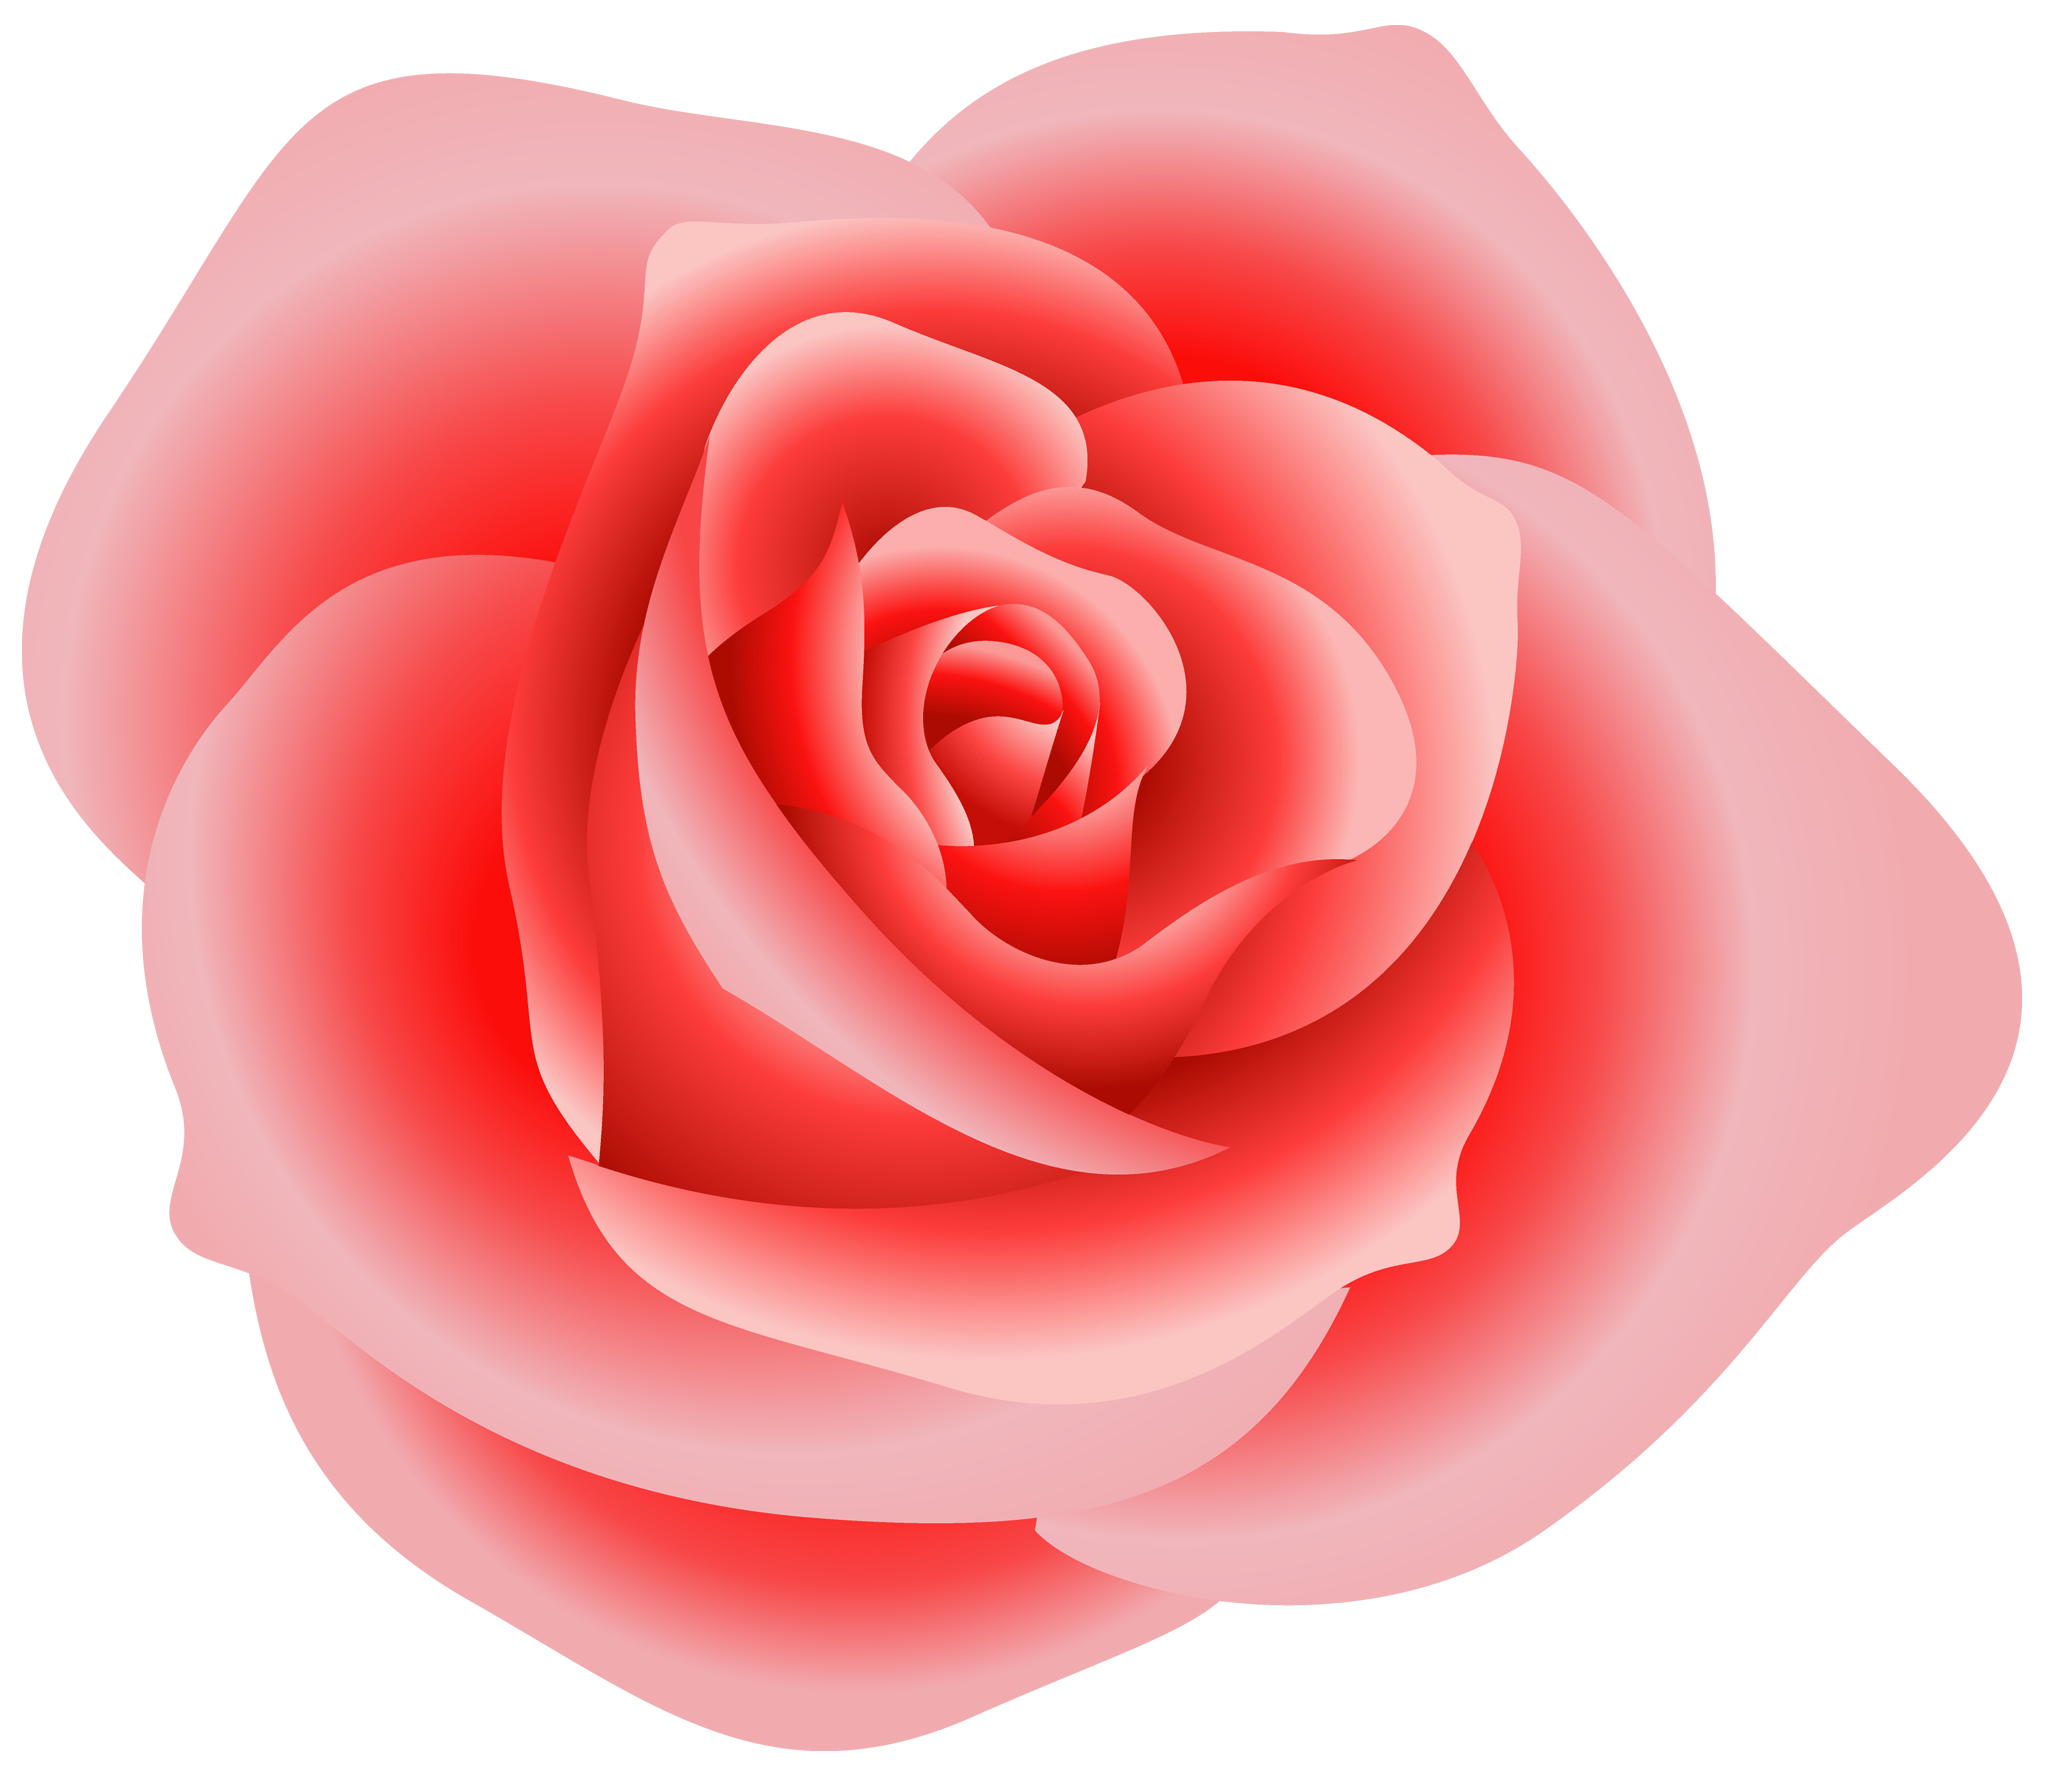 Simple rose clipart free clipart image 2